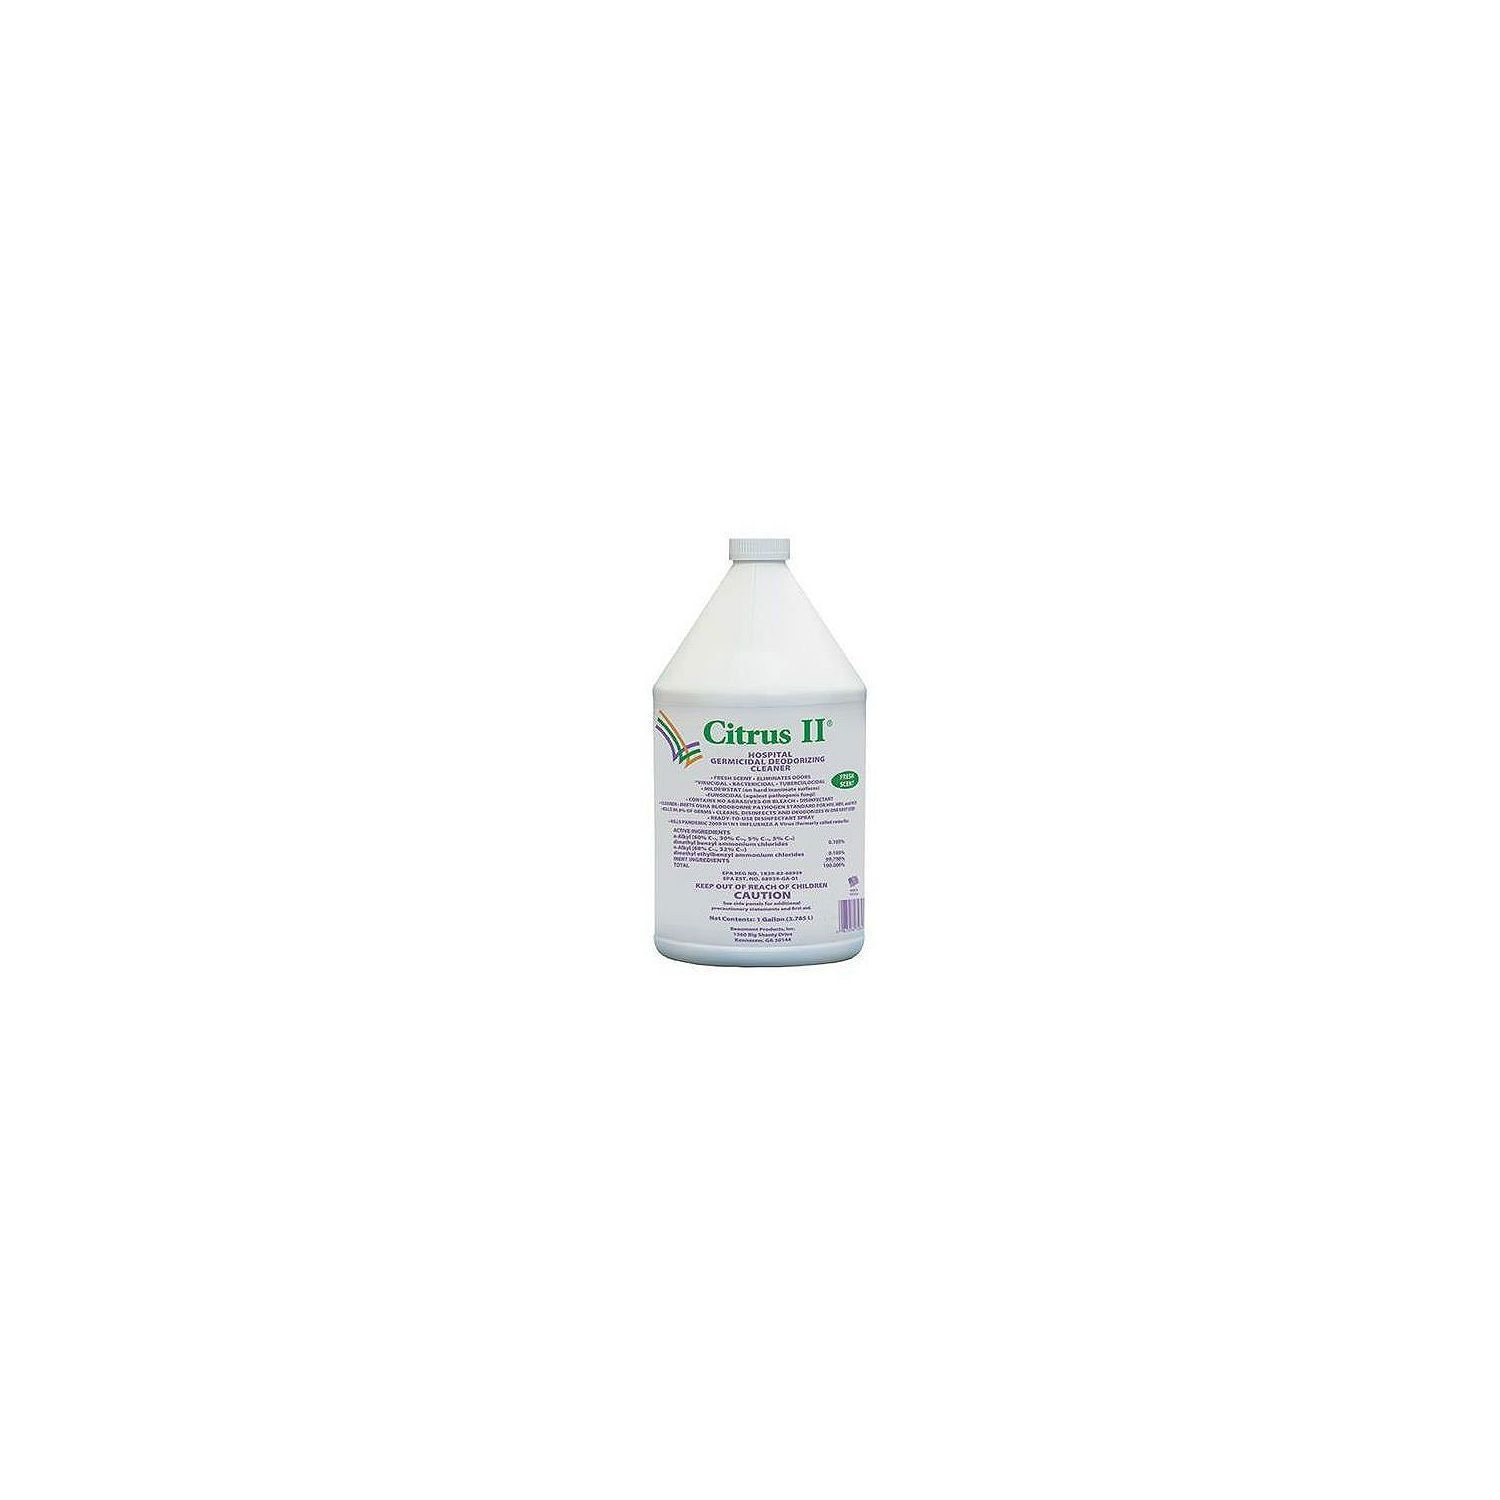 Citrus II Hospital Germicidal Deodorizing Cleaner, Lavendar Scent (1 gal.)